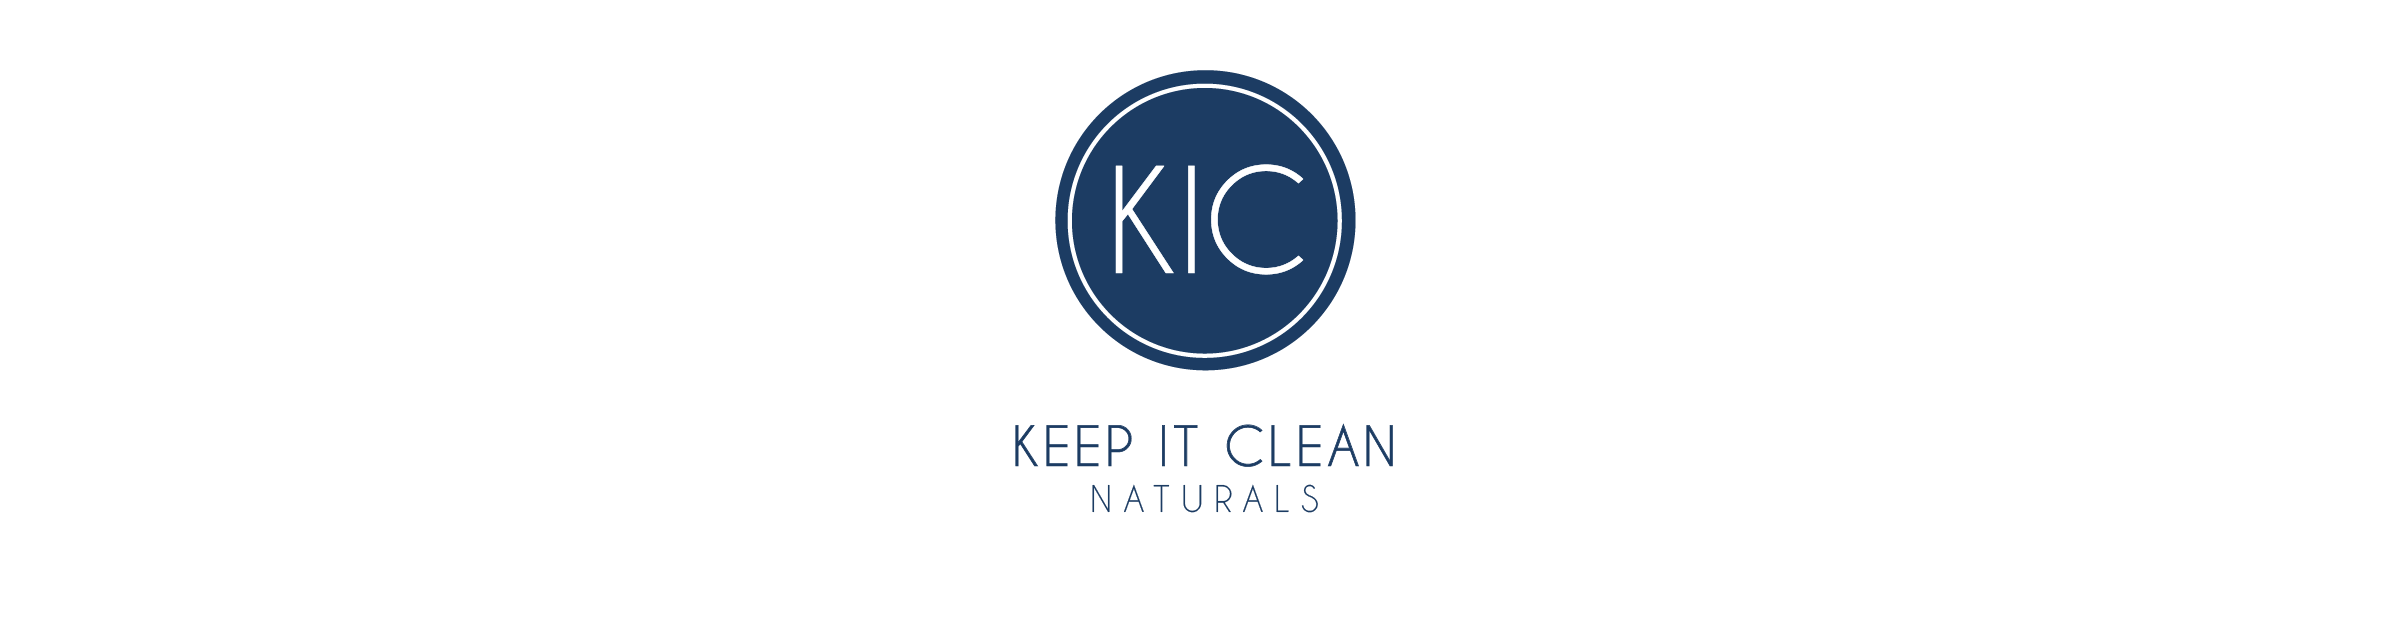 Keep It Clean Naturals - Handmade + Natural